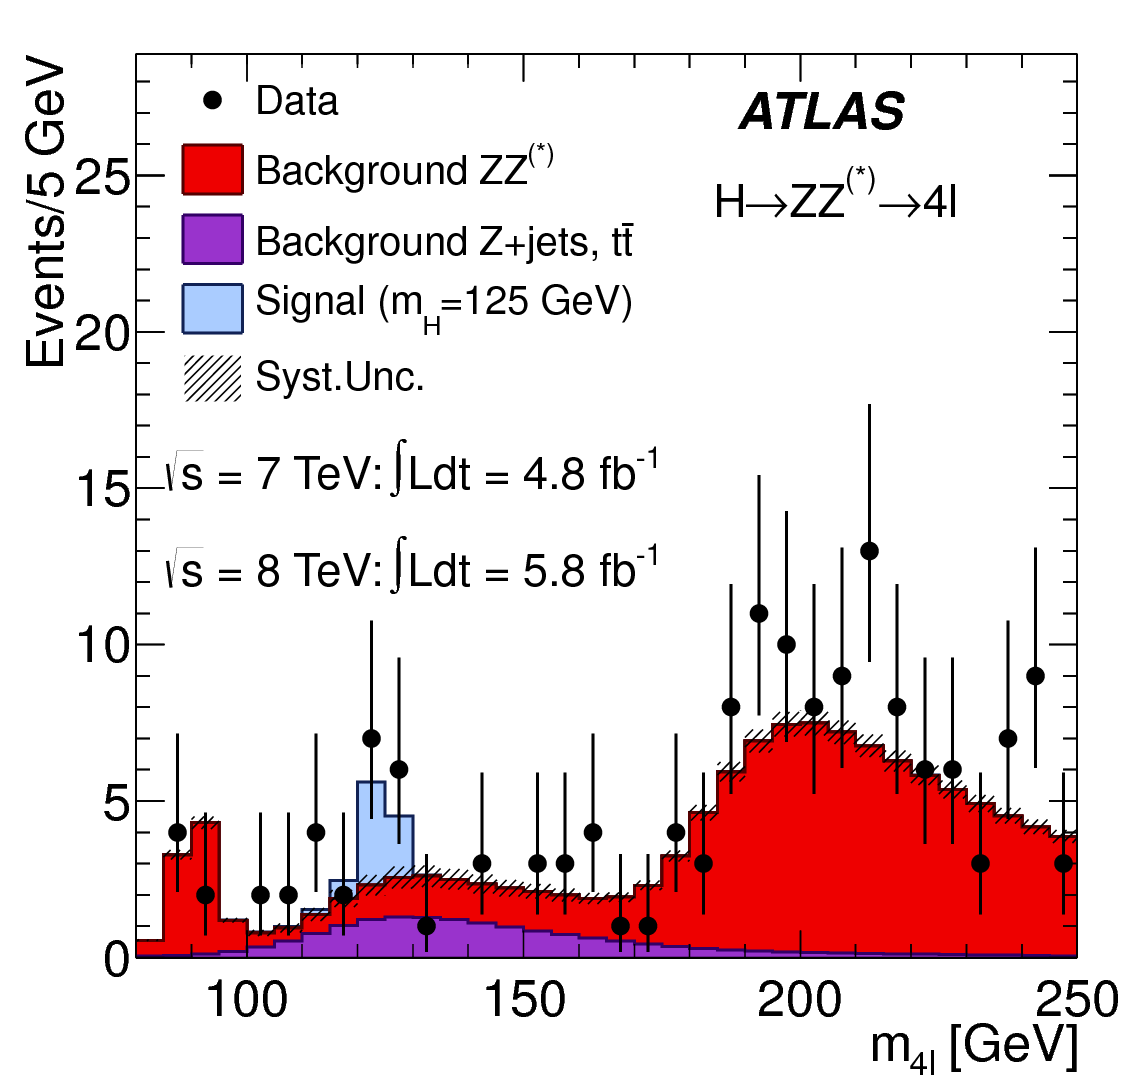 The invariant mass spectrum for ATLAS's H→ZZ* search (ATLAS)